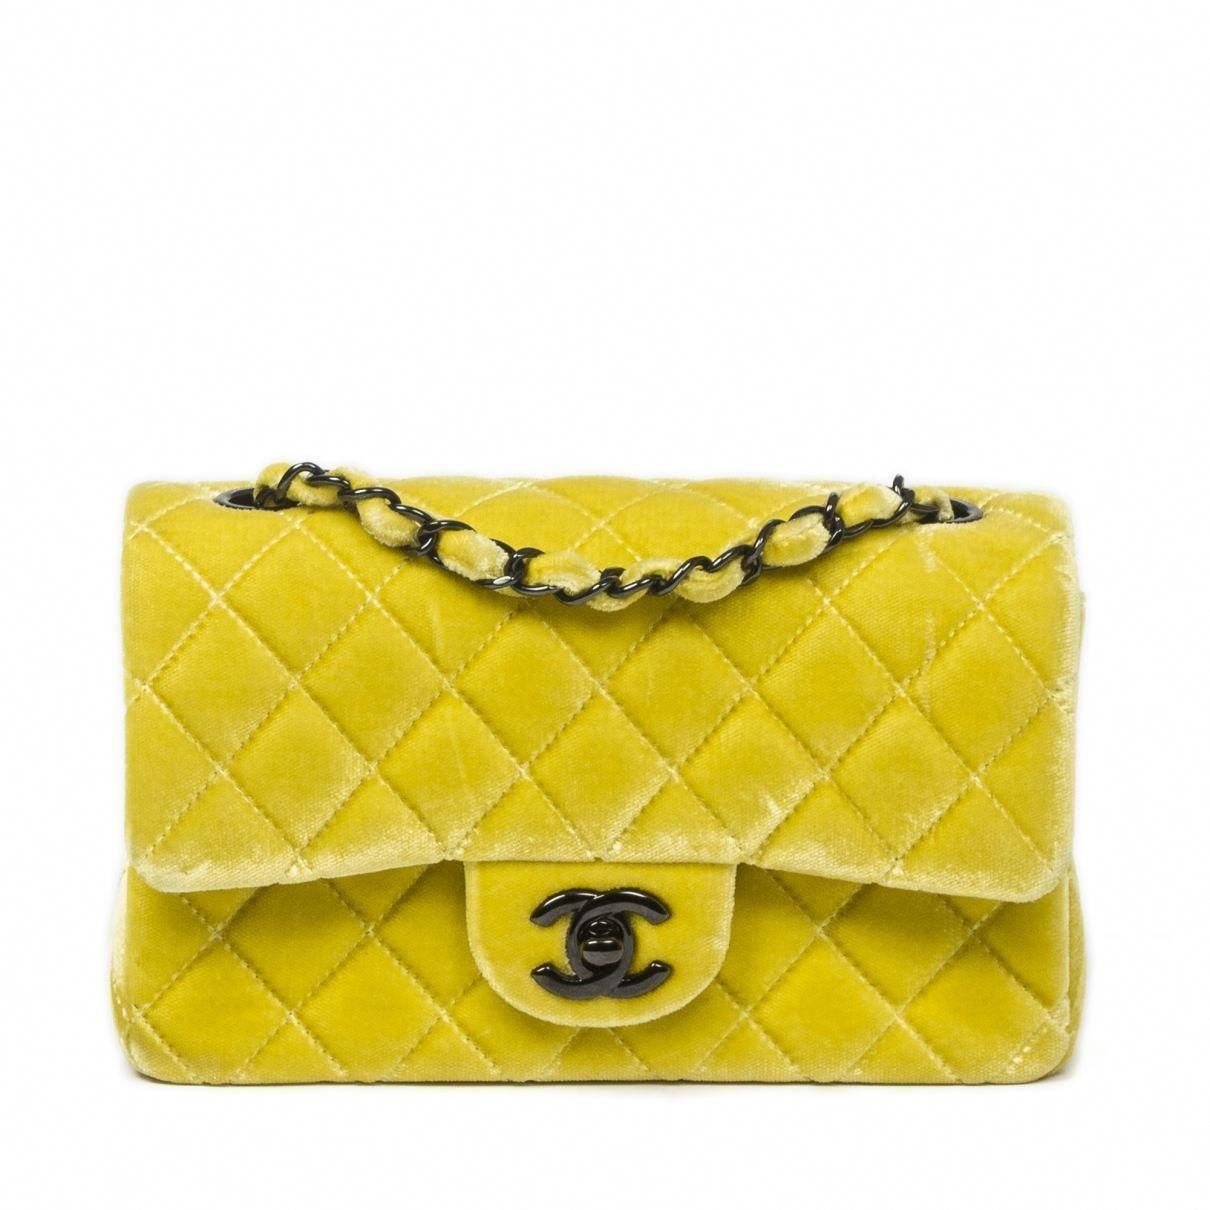 cbb5d6b2a110 Chanel Yellow Timeless Bag | Vestiaire Collective | Best Leather ...